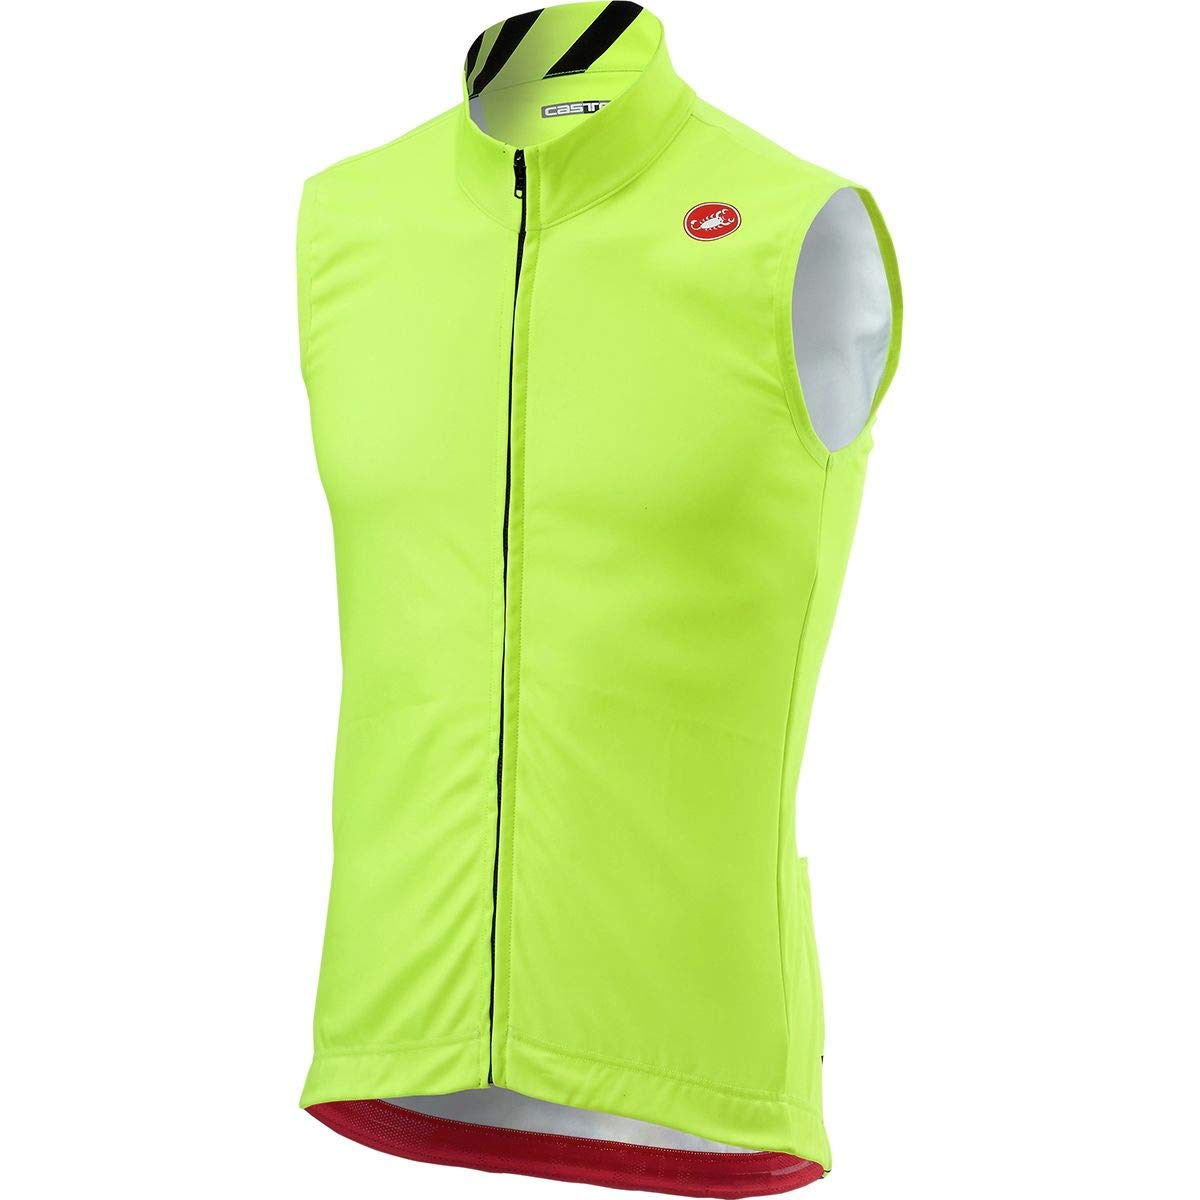 Castelli Thermal Pro Vest - Men's Yellow Fluo, S by Castelli